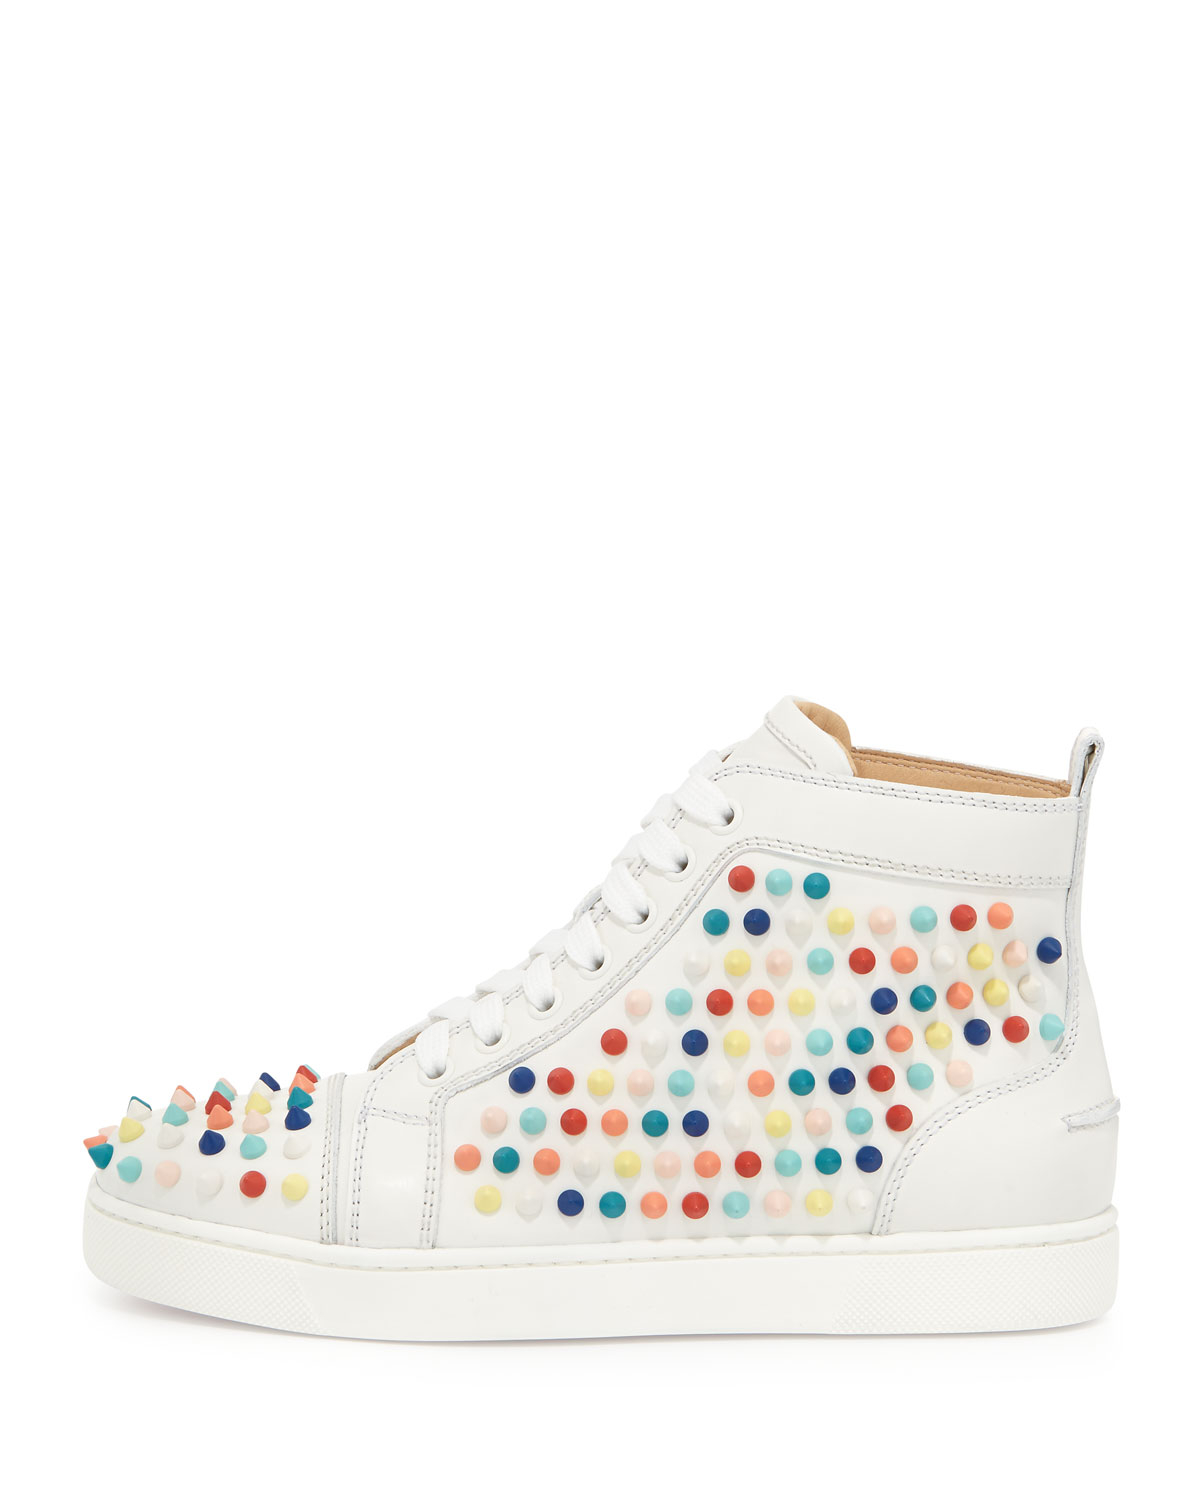 more photos f5dd4 594c0 Christian Louboutin Multicolor Louis Spikes Calfskin Hightop Sneaker